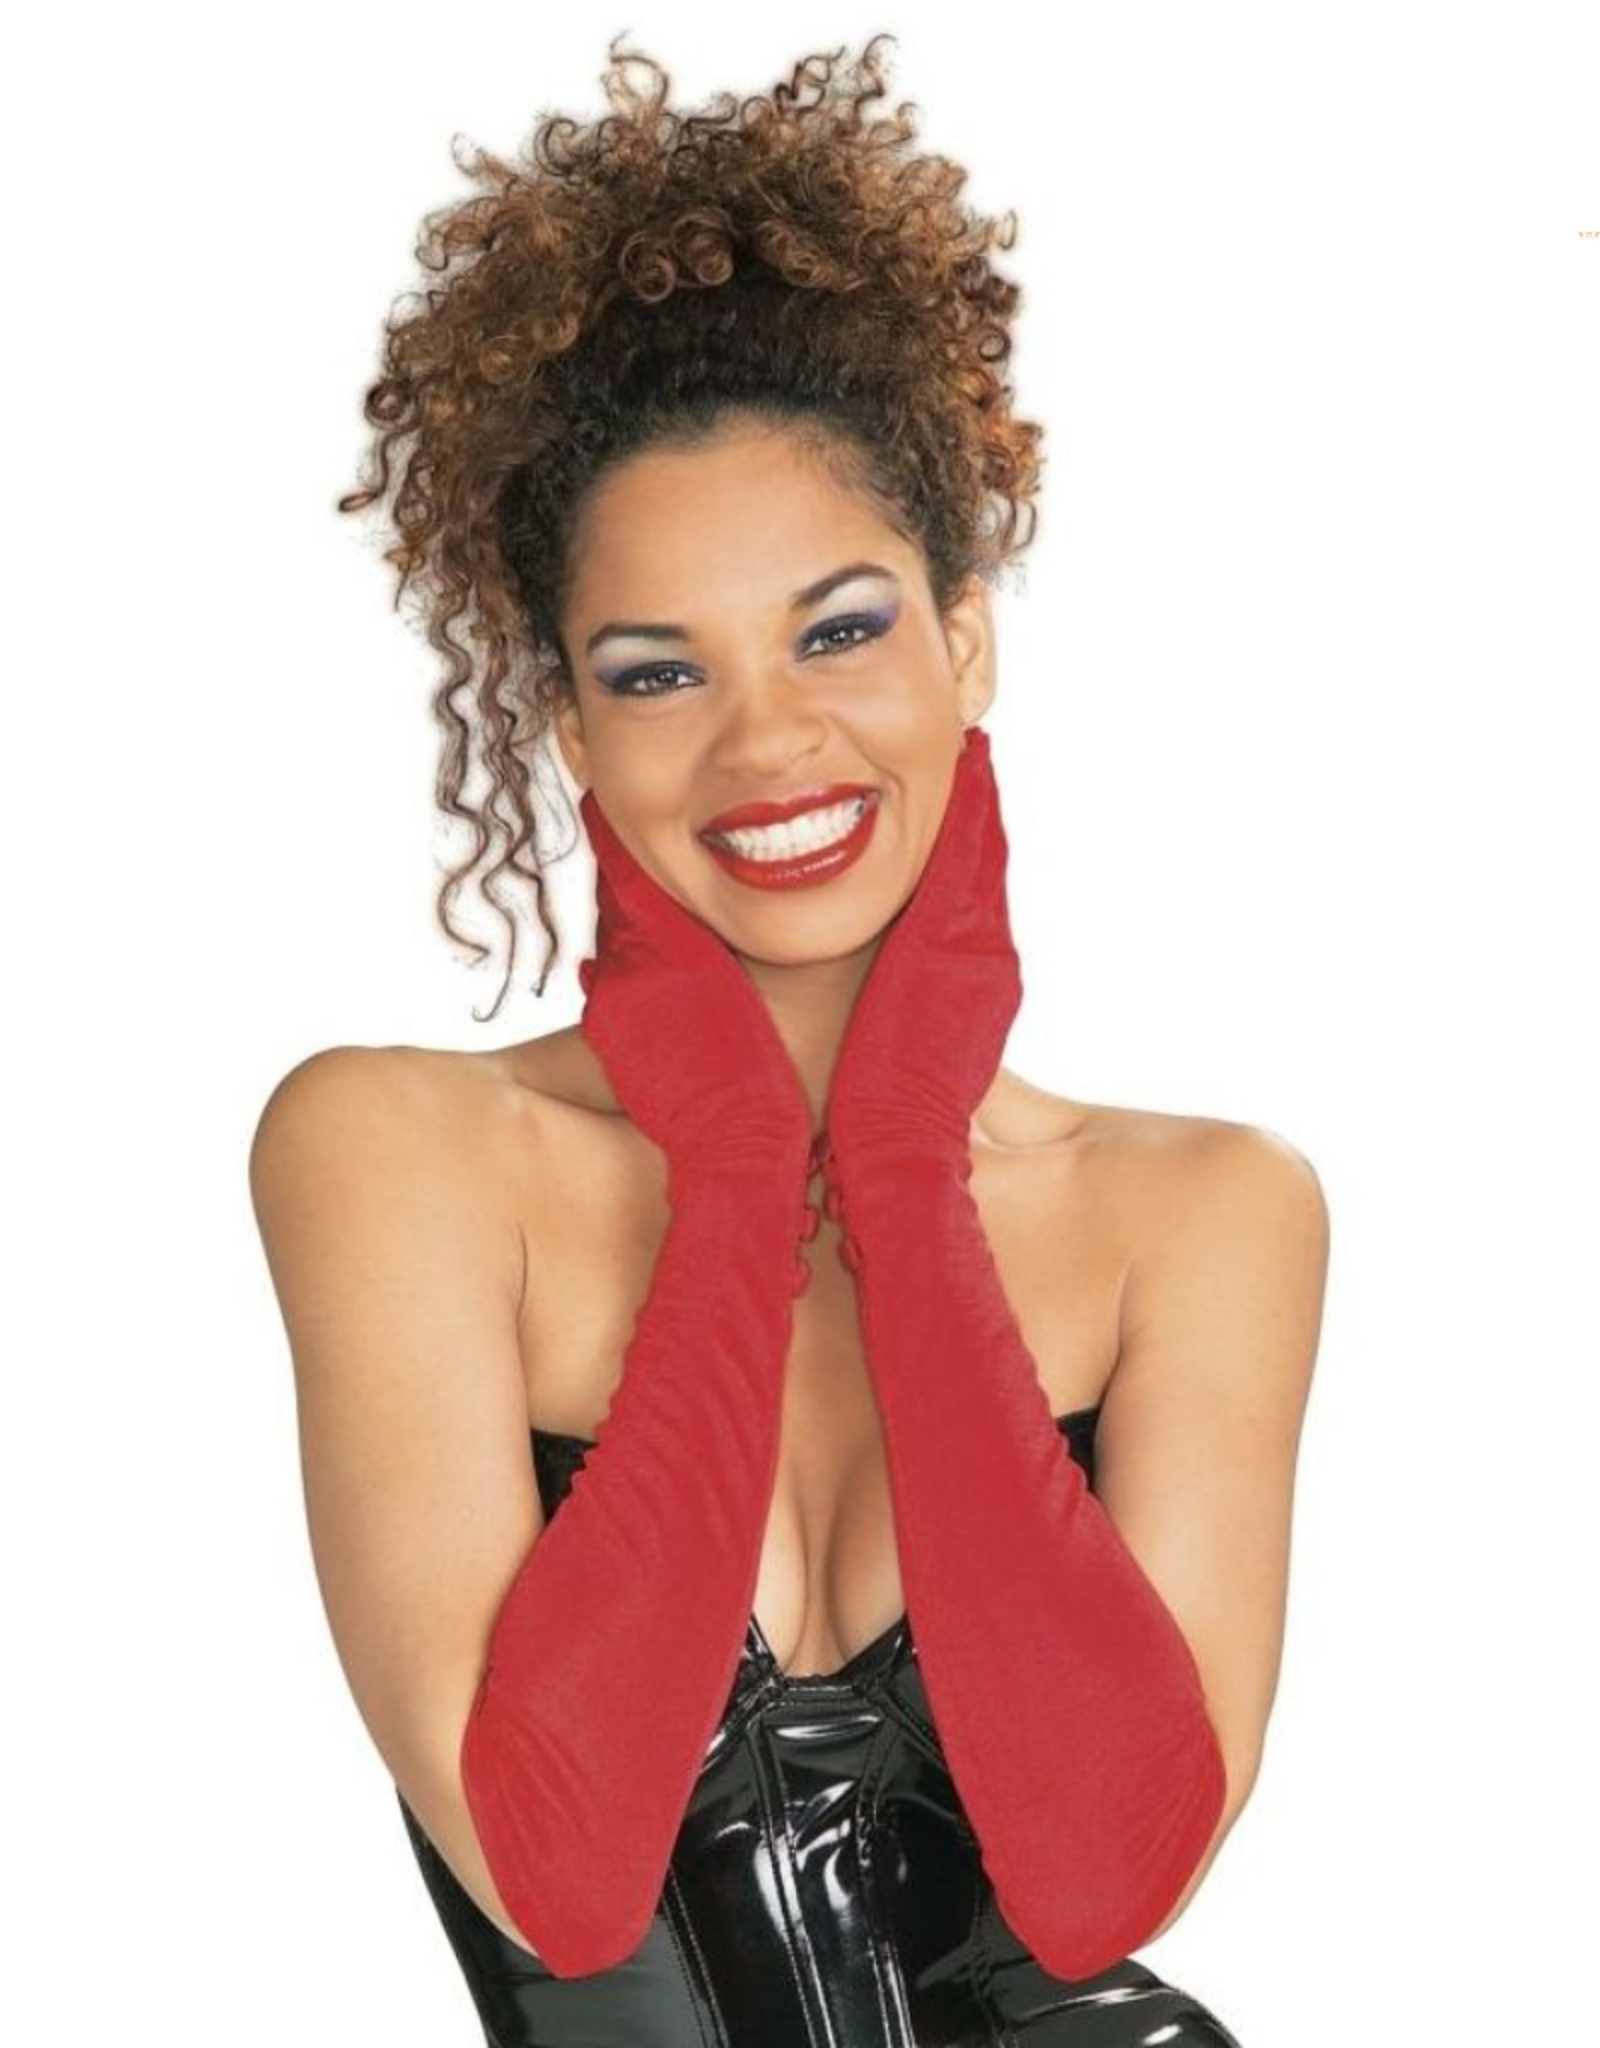 GLOVES-XL SHOULDER LGTH, NYLON W BUTTONS, RED, D